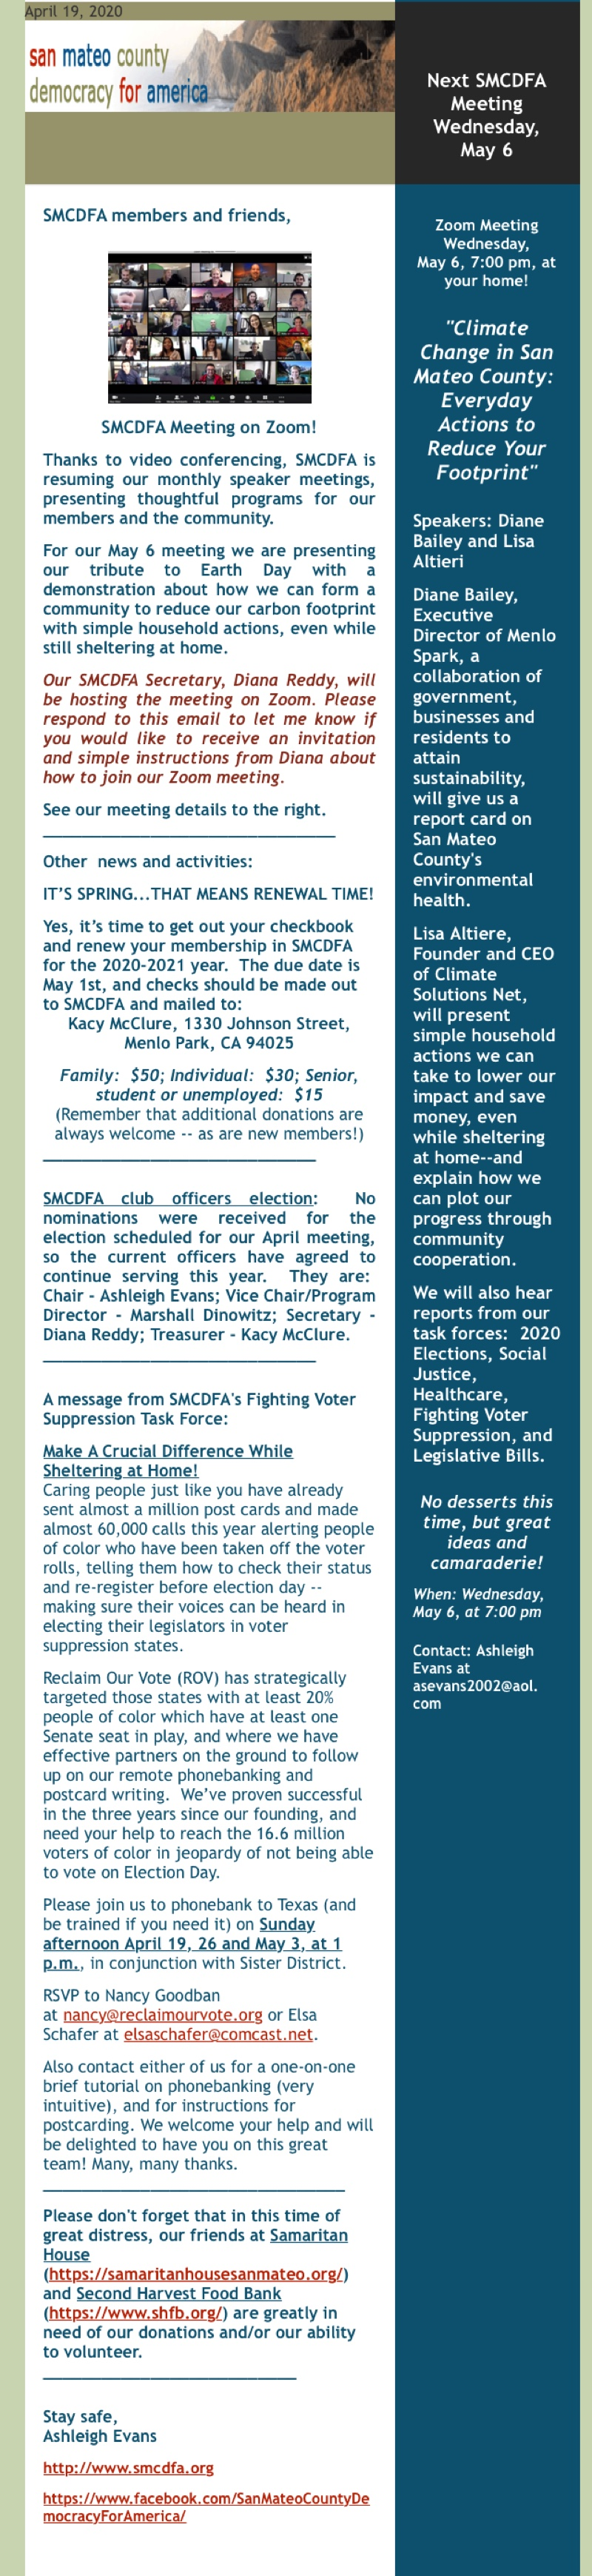 SMCDFA_Apr_Newsletter.jpg